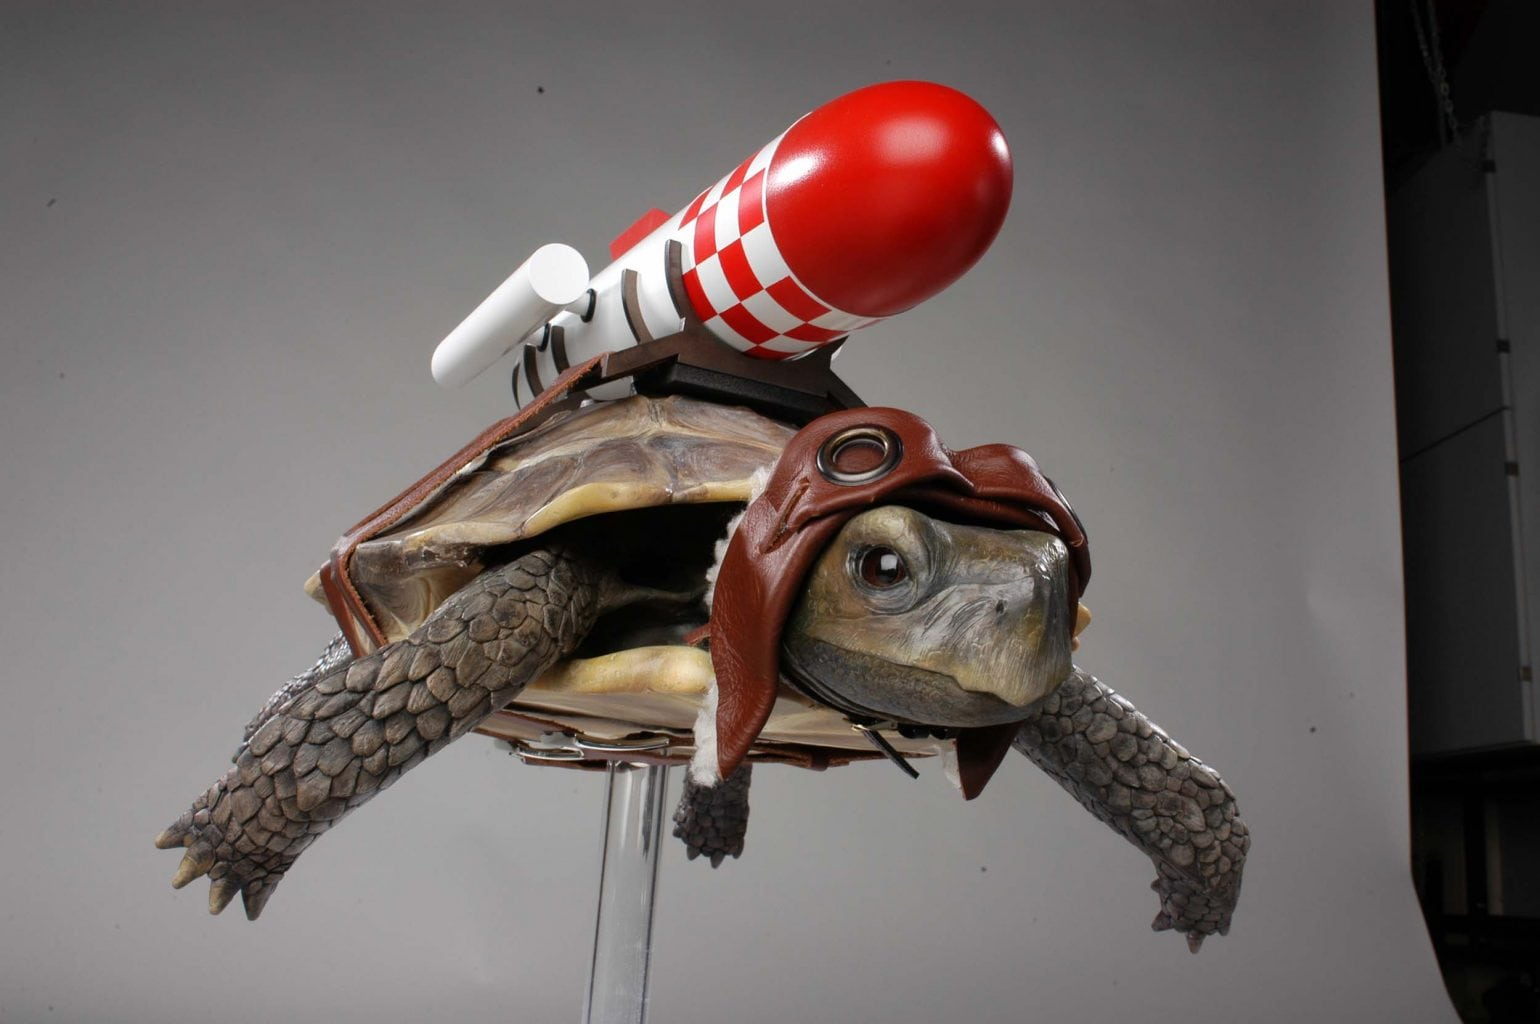 Model of a Tortoise with rocket on its back